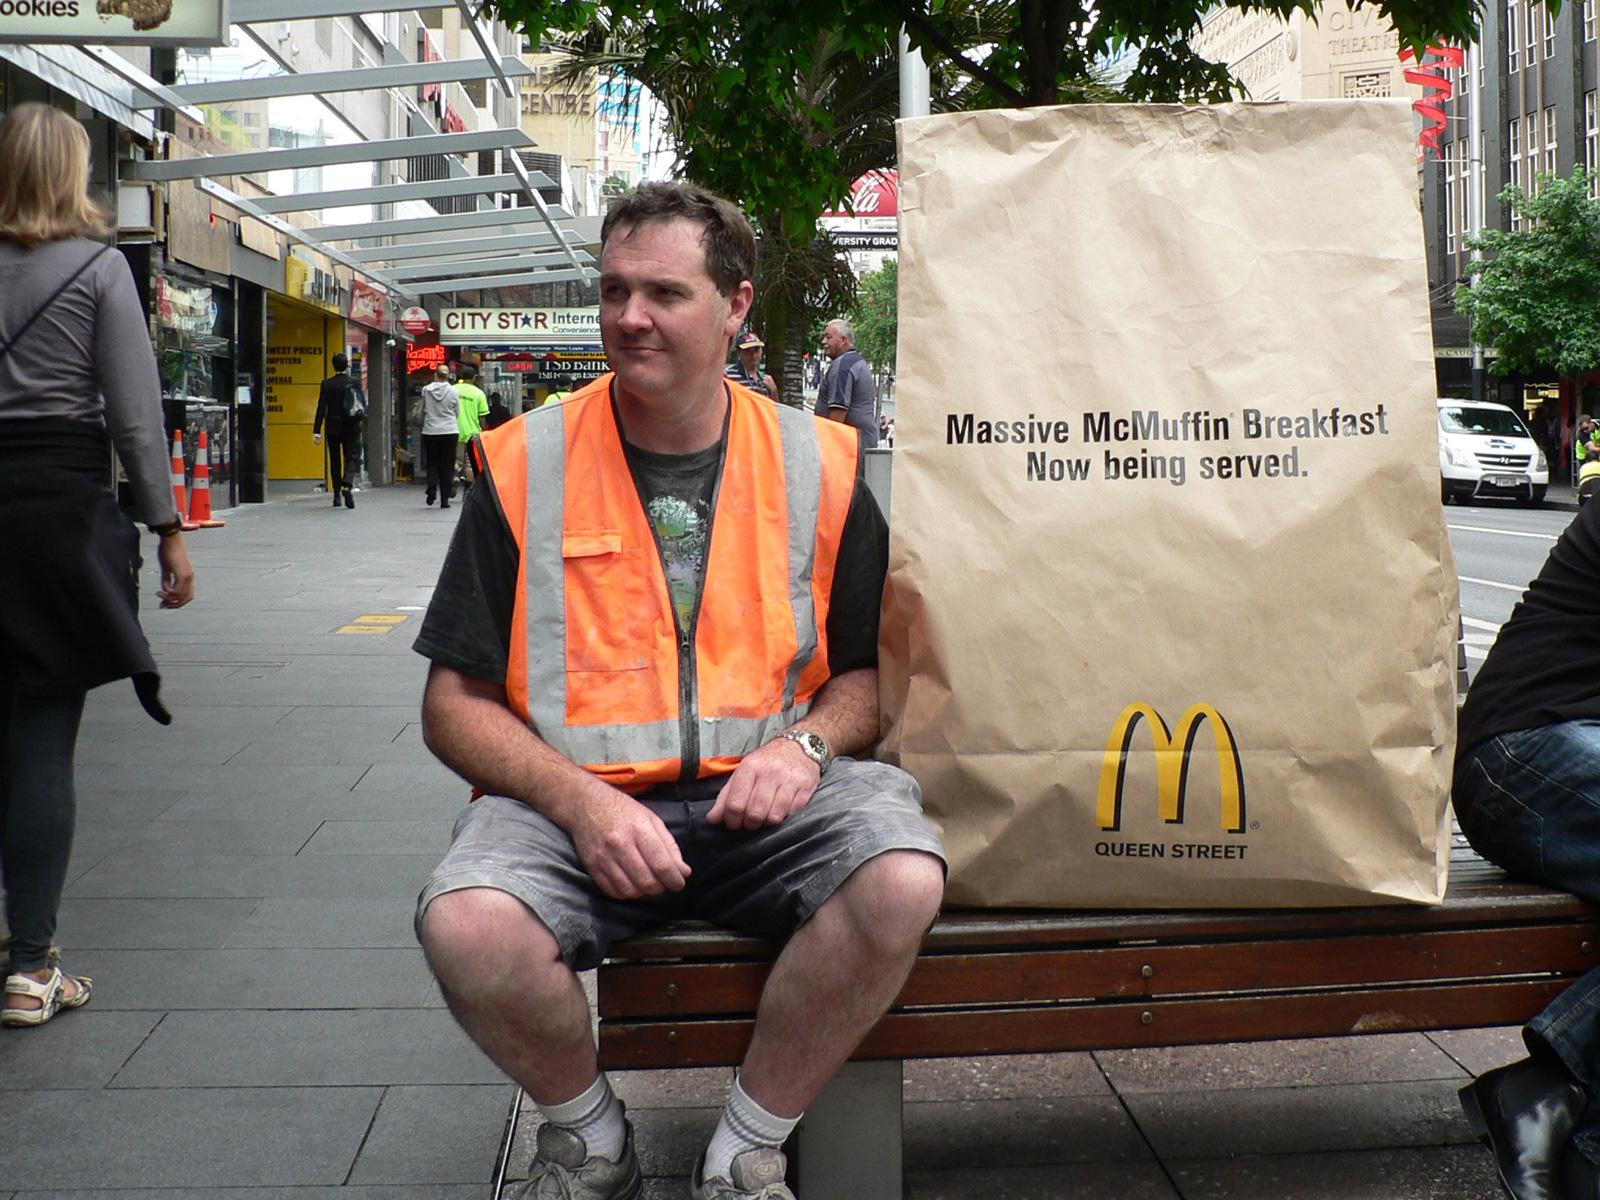 McDonald's Ambient Ad -  Massive McMuffin Breakfast, 1